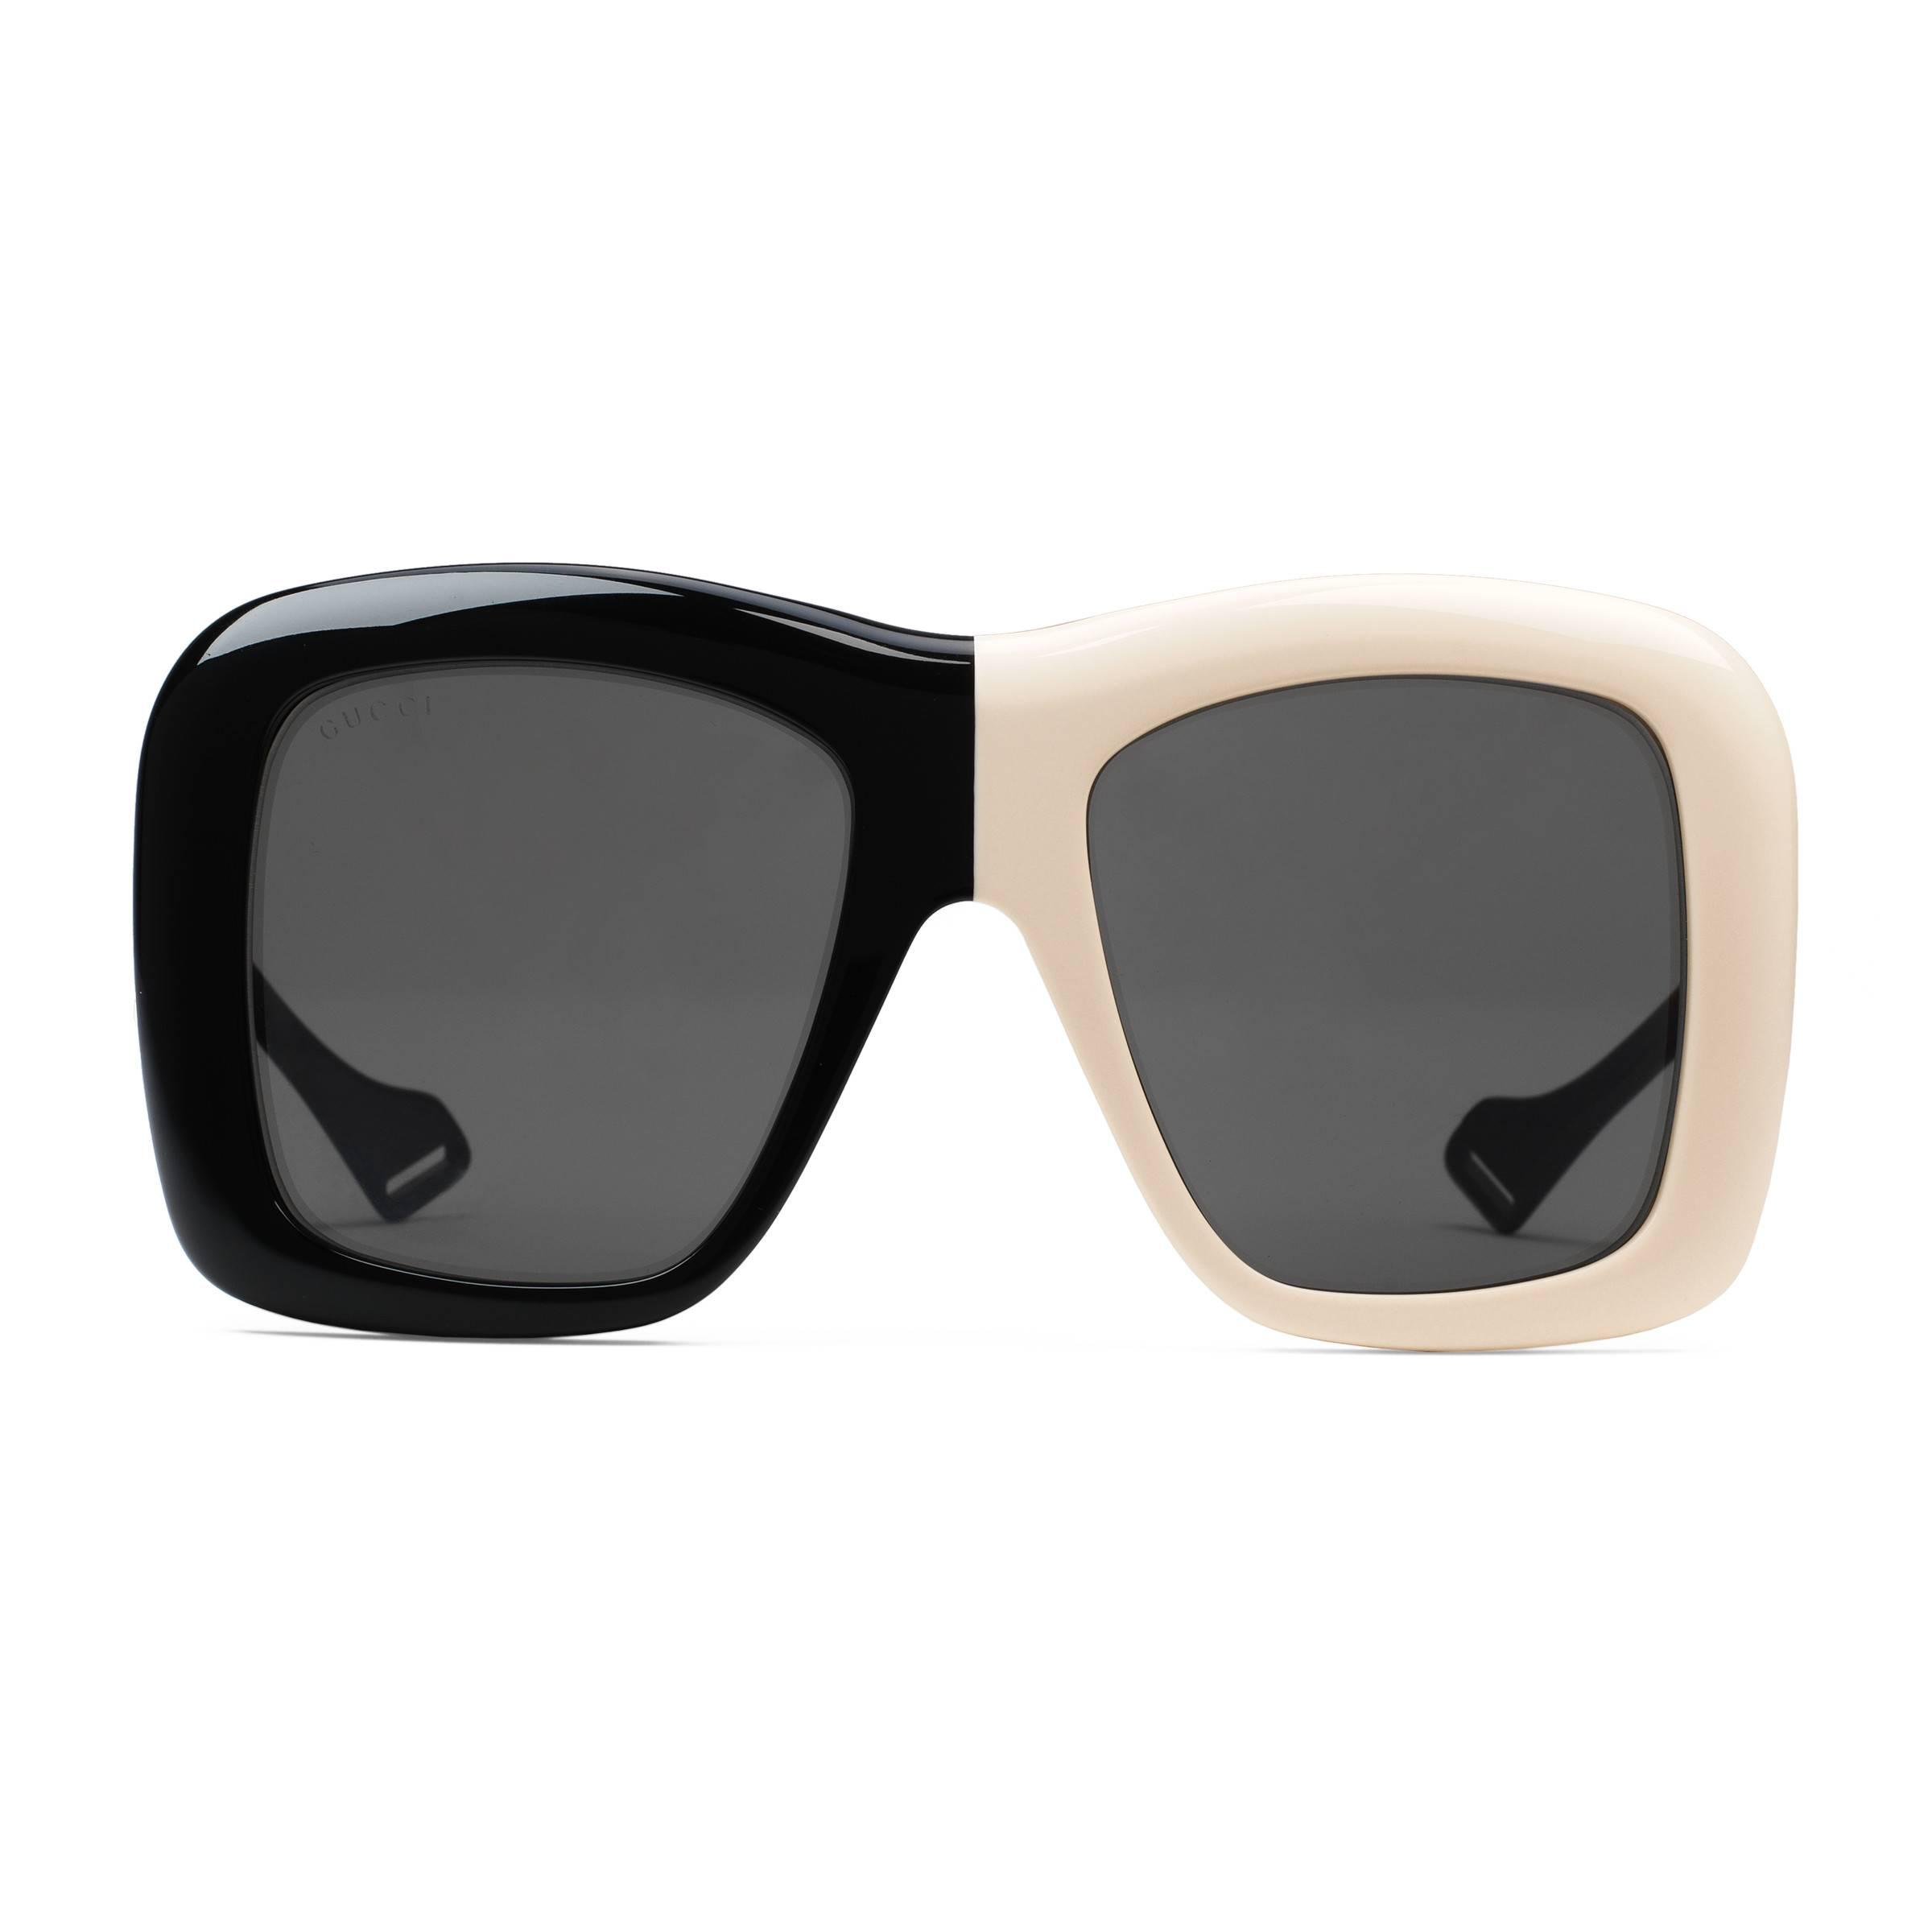 79986b9bd70 Gucci Oversize Square-frame Sunglasses in Black - Save 12% - Lyst